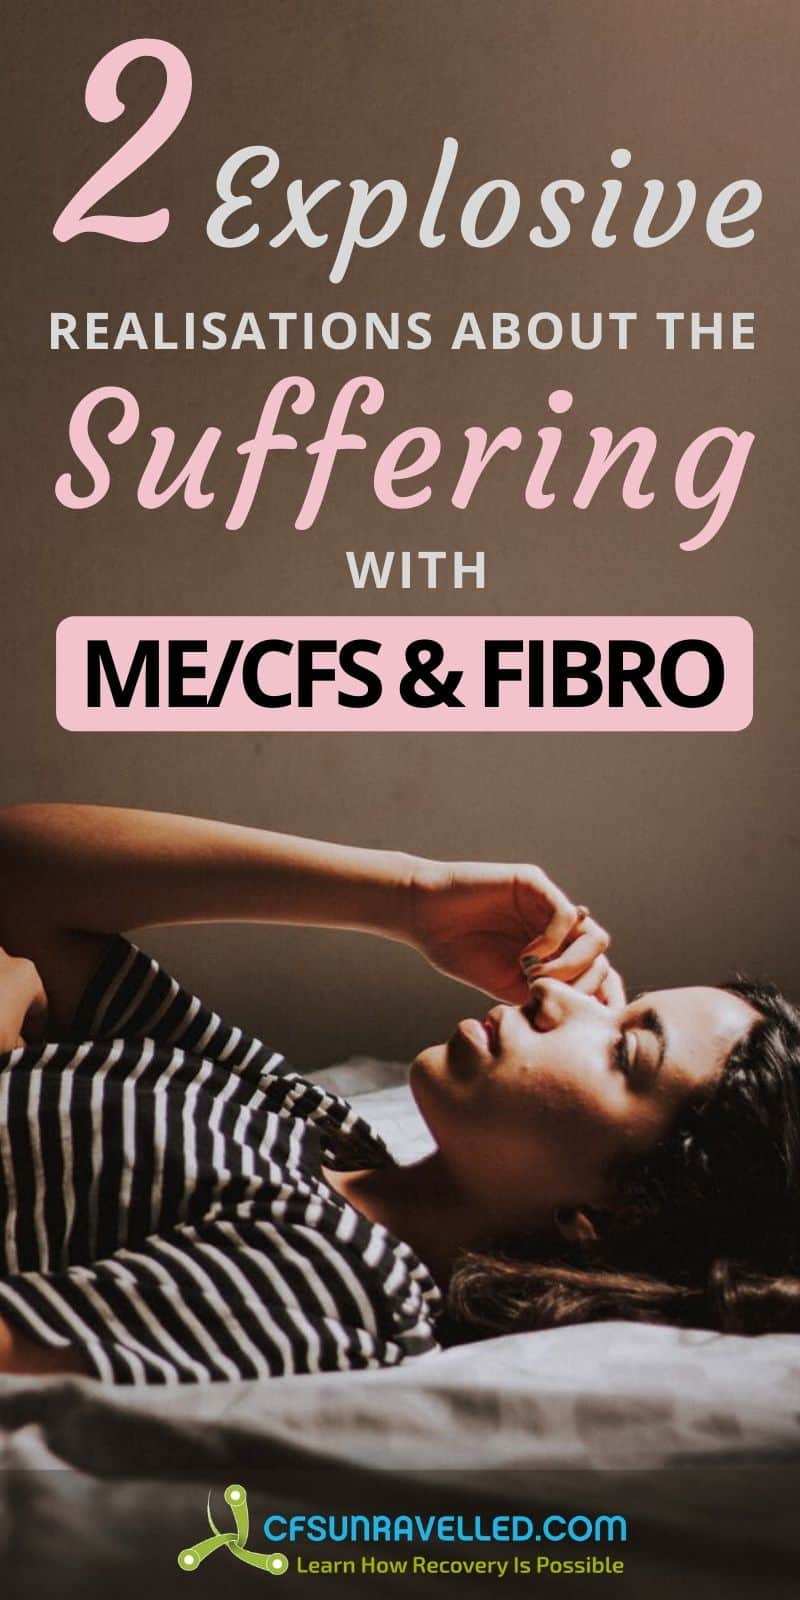 Woman lying down in bed with 2 explosive realisations about the suffering with MECFS and Fibromyalgia text above